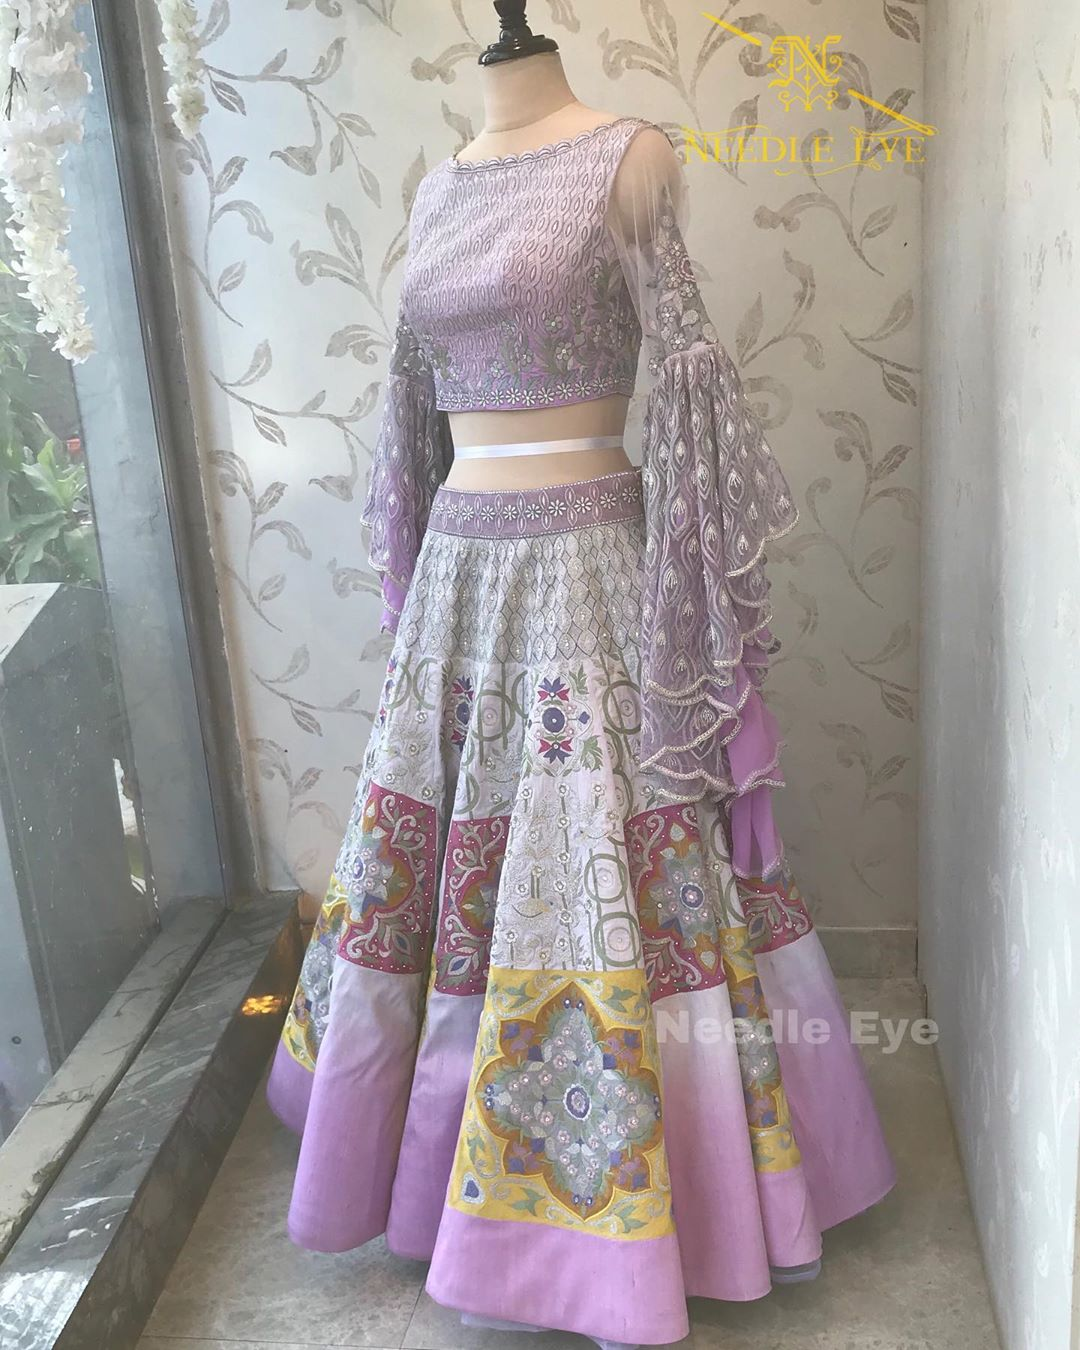 Lavender Romance. Stunning lavender lehenga and blouse with long bell sleeves. 2020-08-13